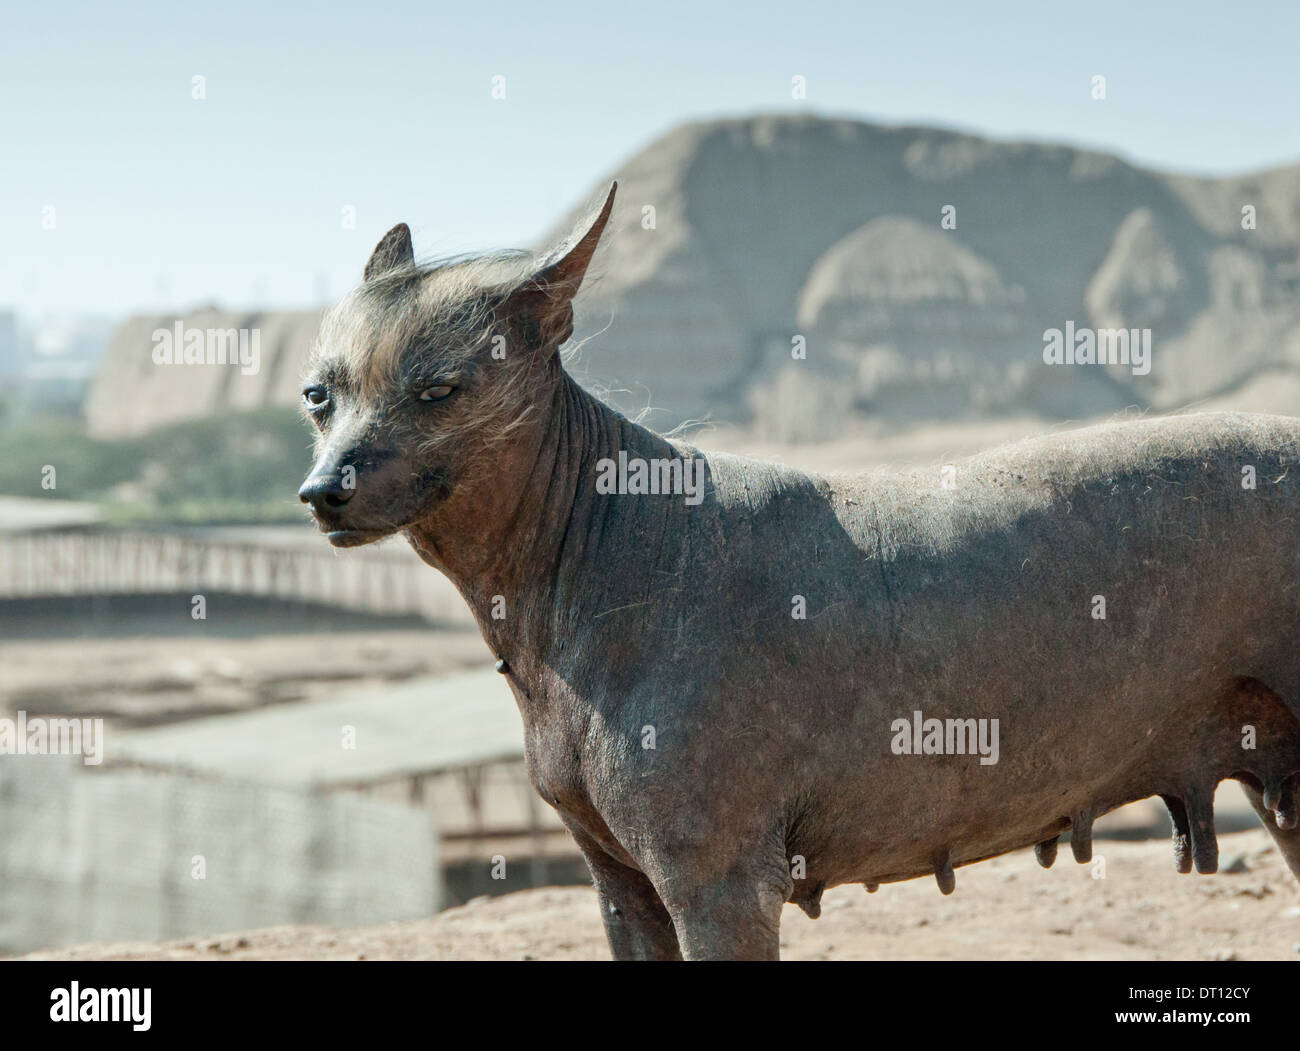 Perro Calato of the Huaca del Sol - the native Peruvian hairless dog - Viringo - Stock Image